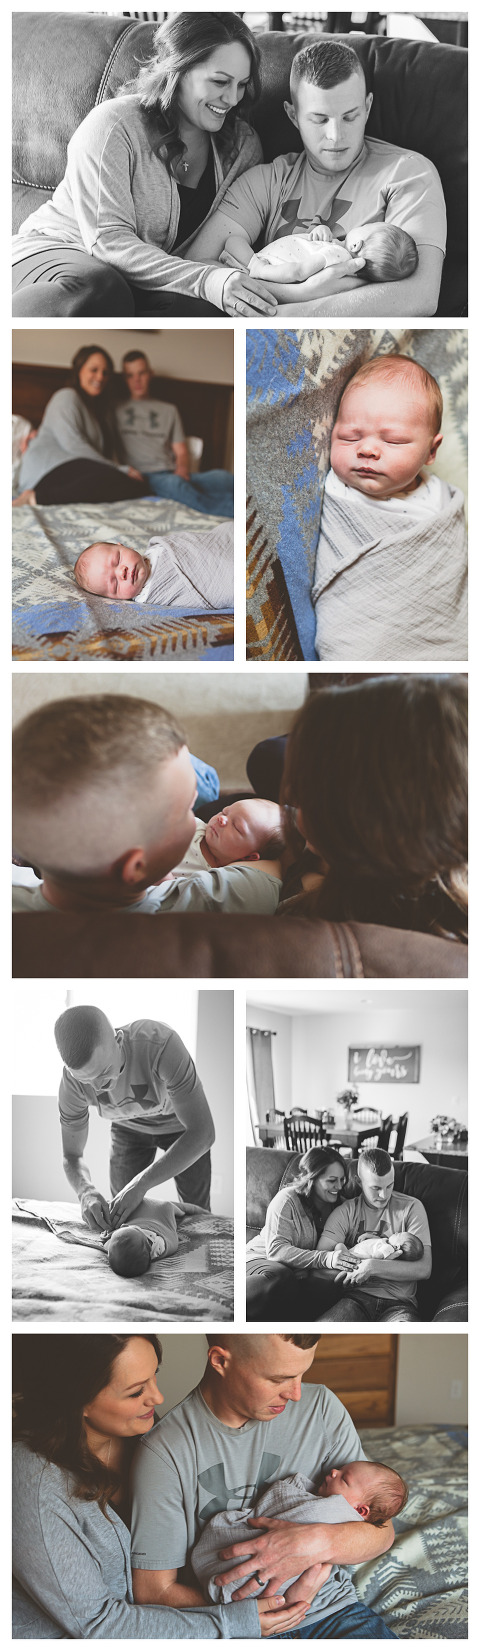 Baby Dash with parents at Lifestyle newborn session by Hailey Haberman in Ellensburg WA